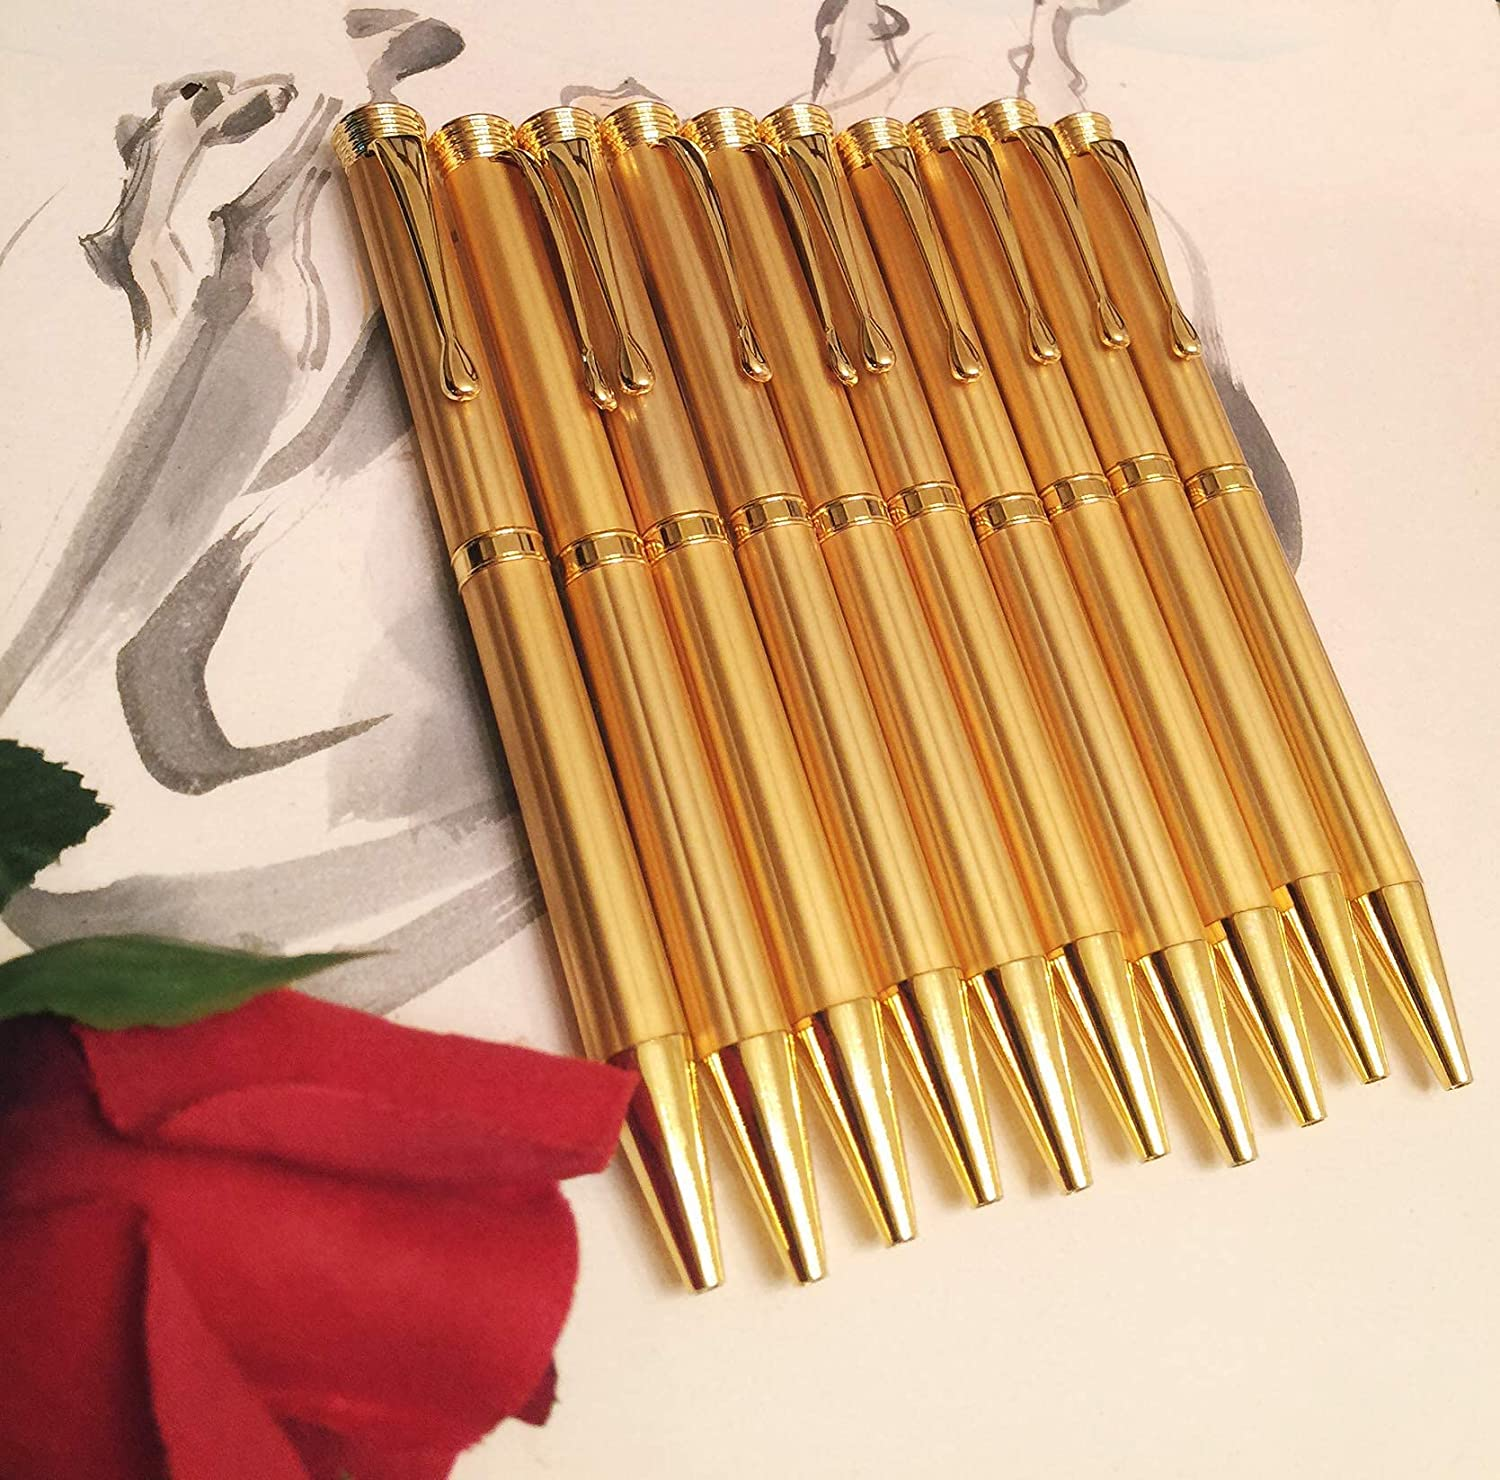 10 High-end Gold-Plated El Paso Mall Gift trust Ballpoint Pe Business Executive Pen